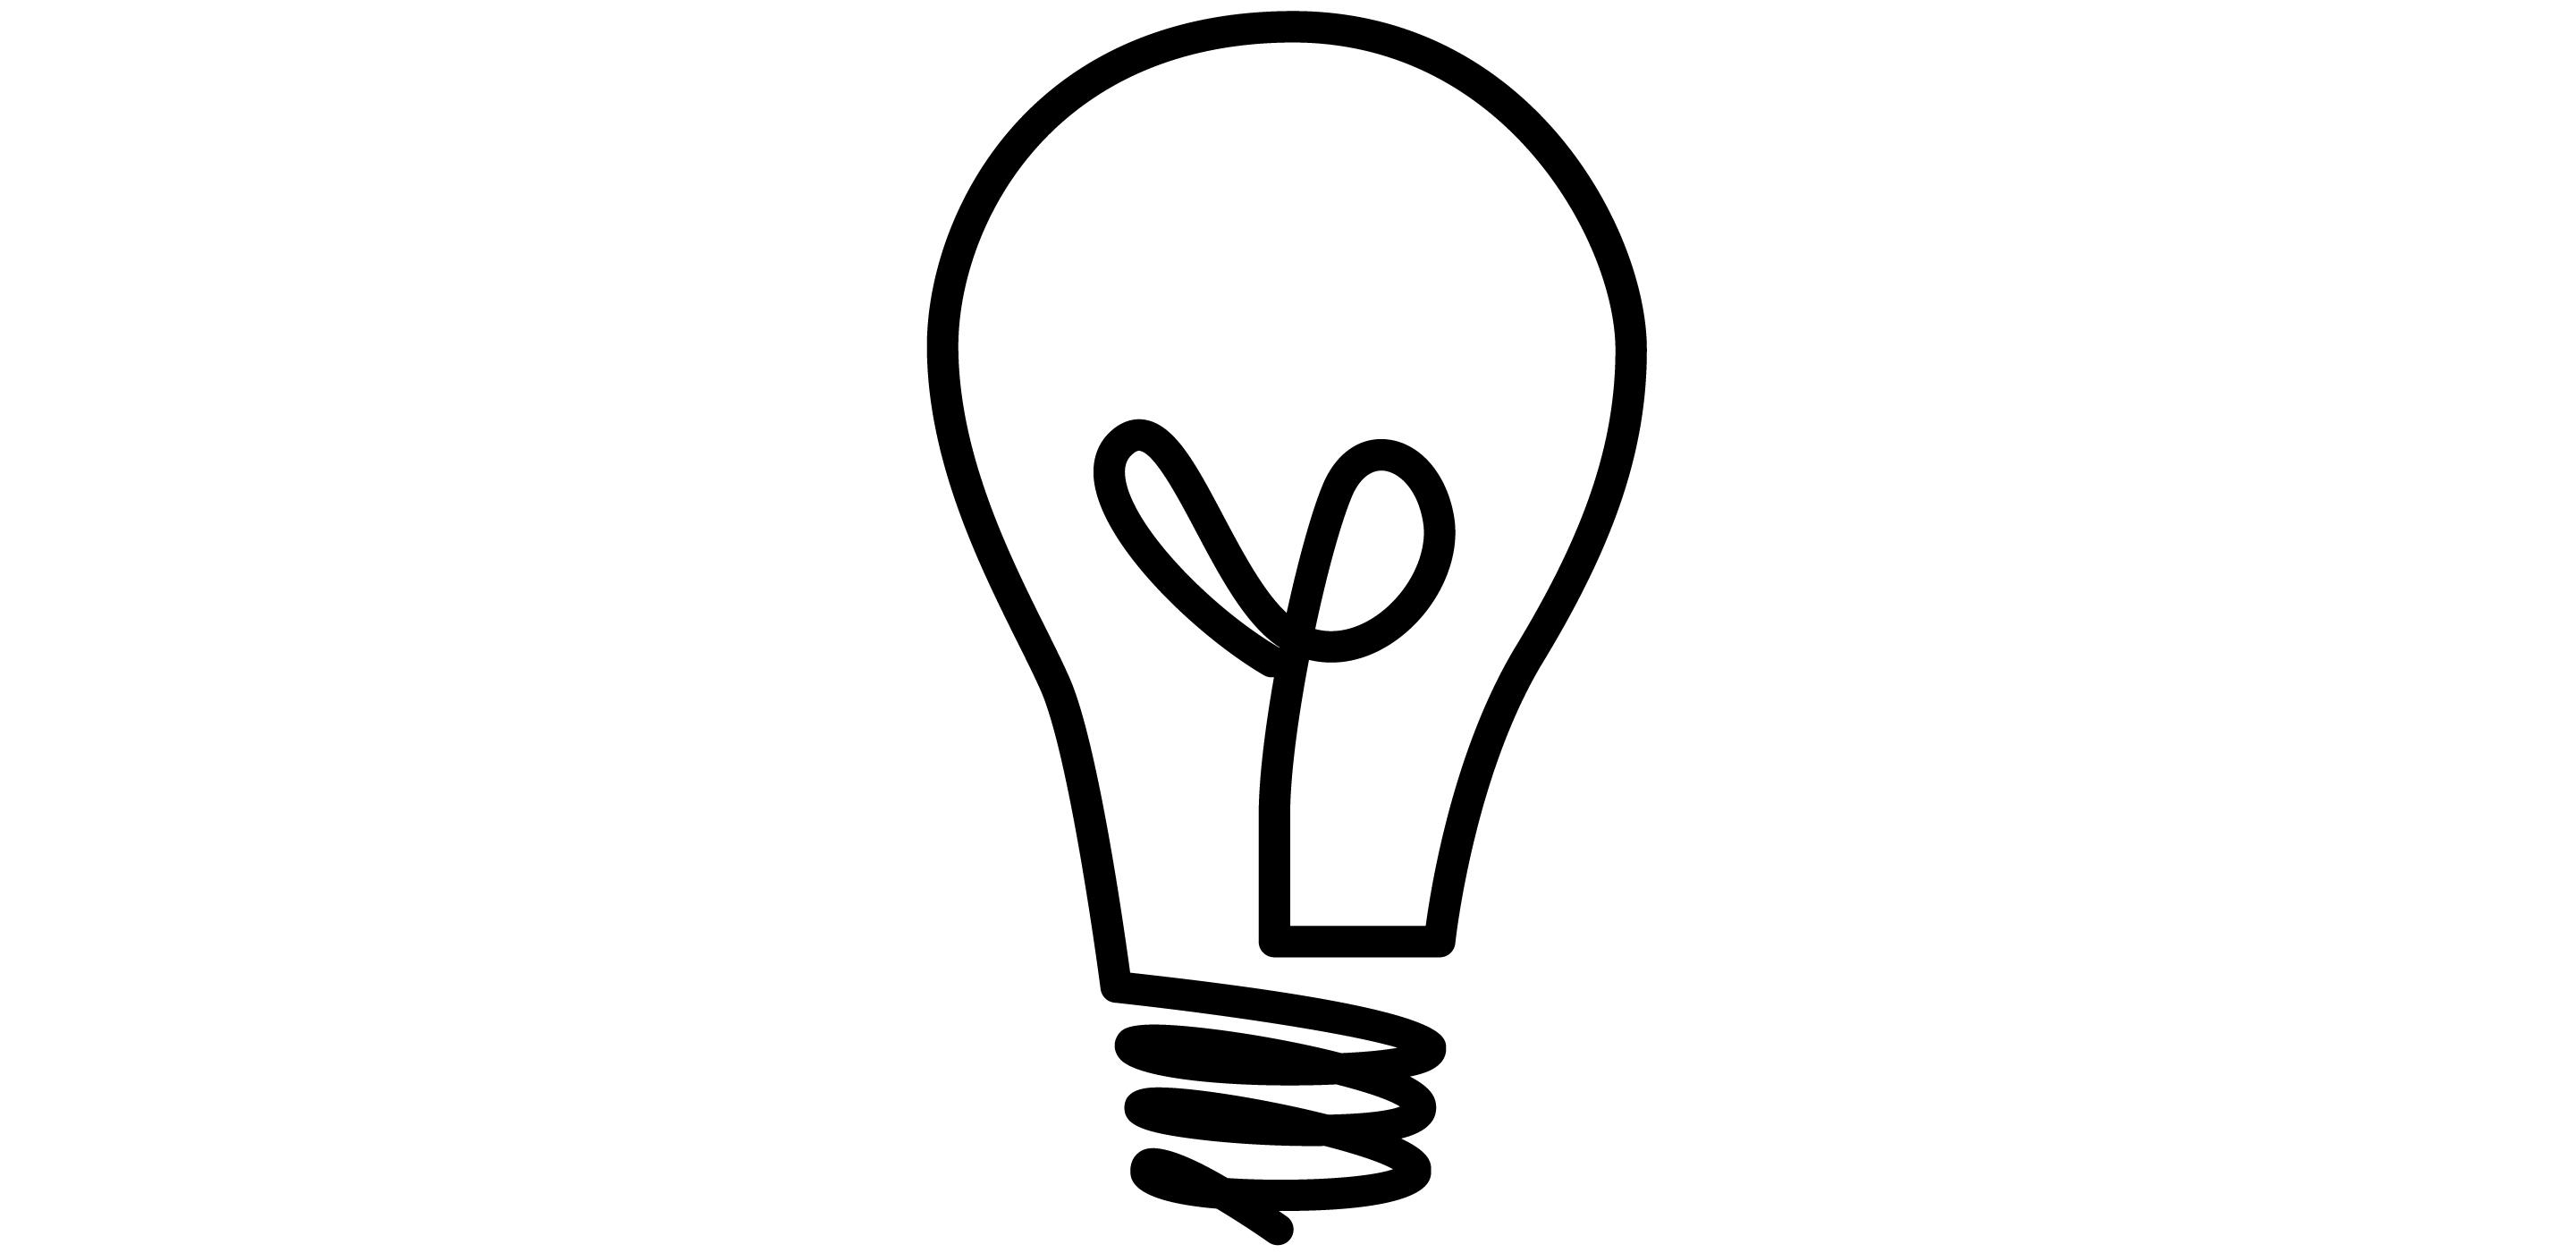 Light Bulb Clipart to free download.